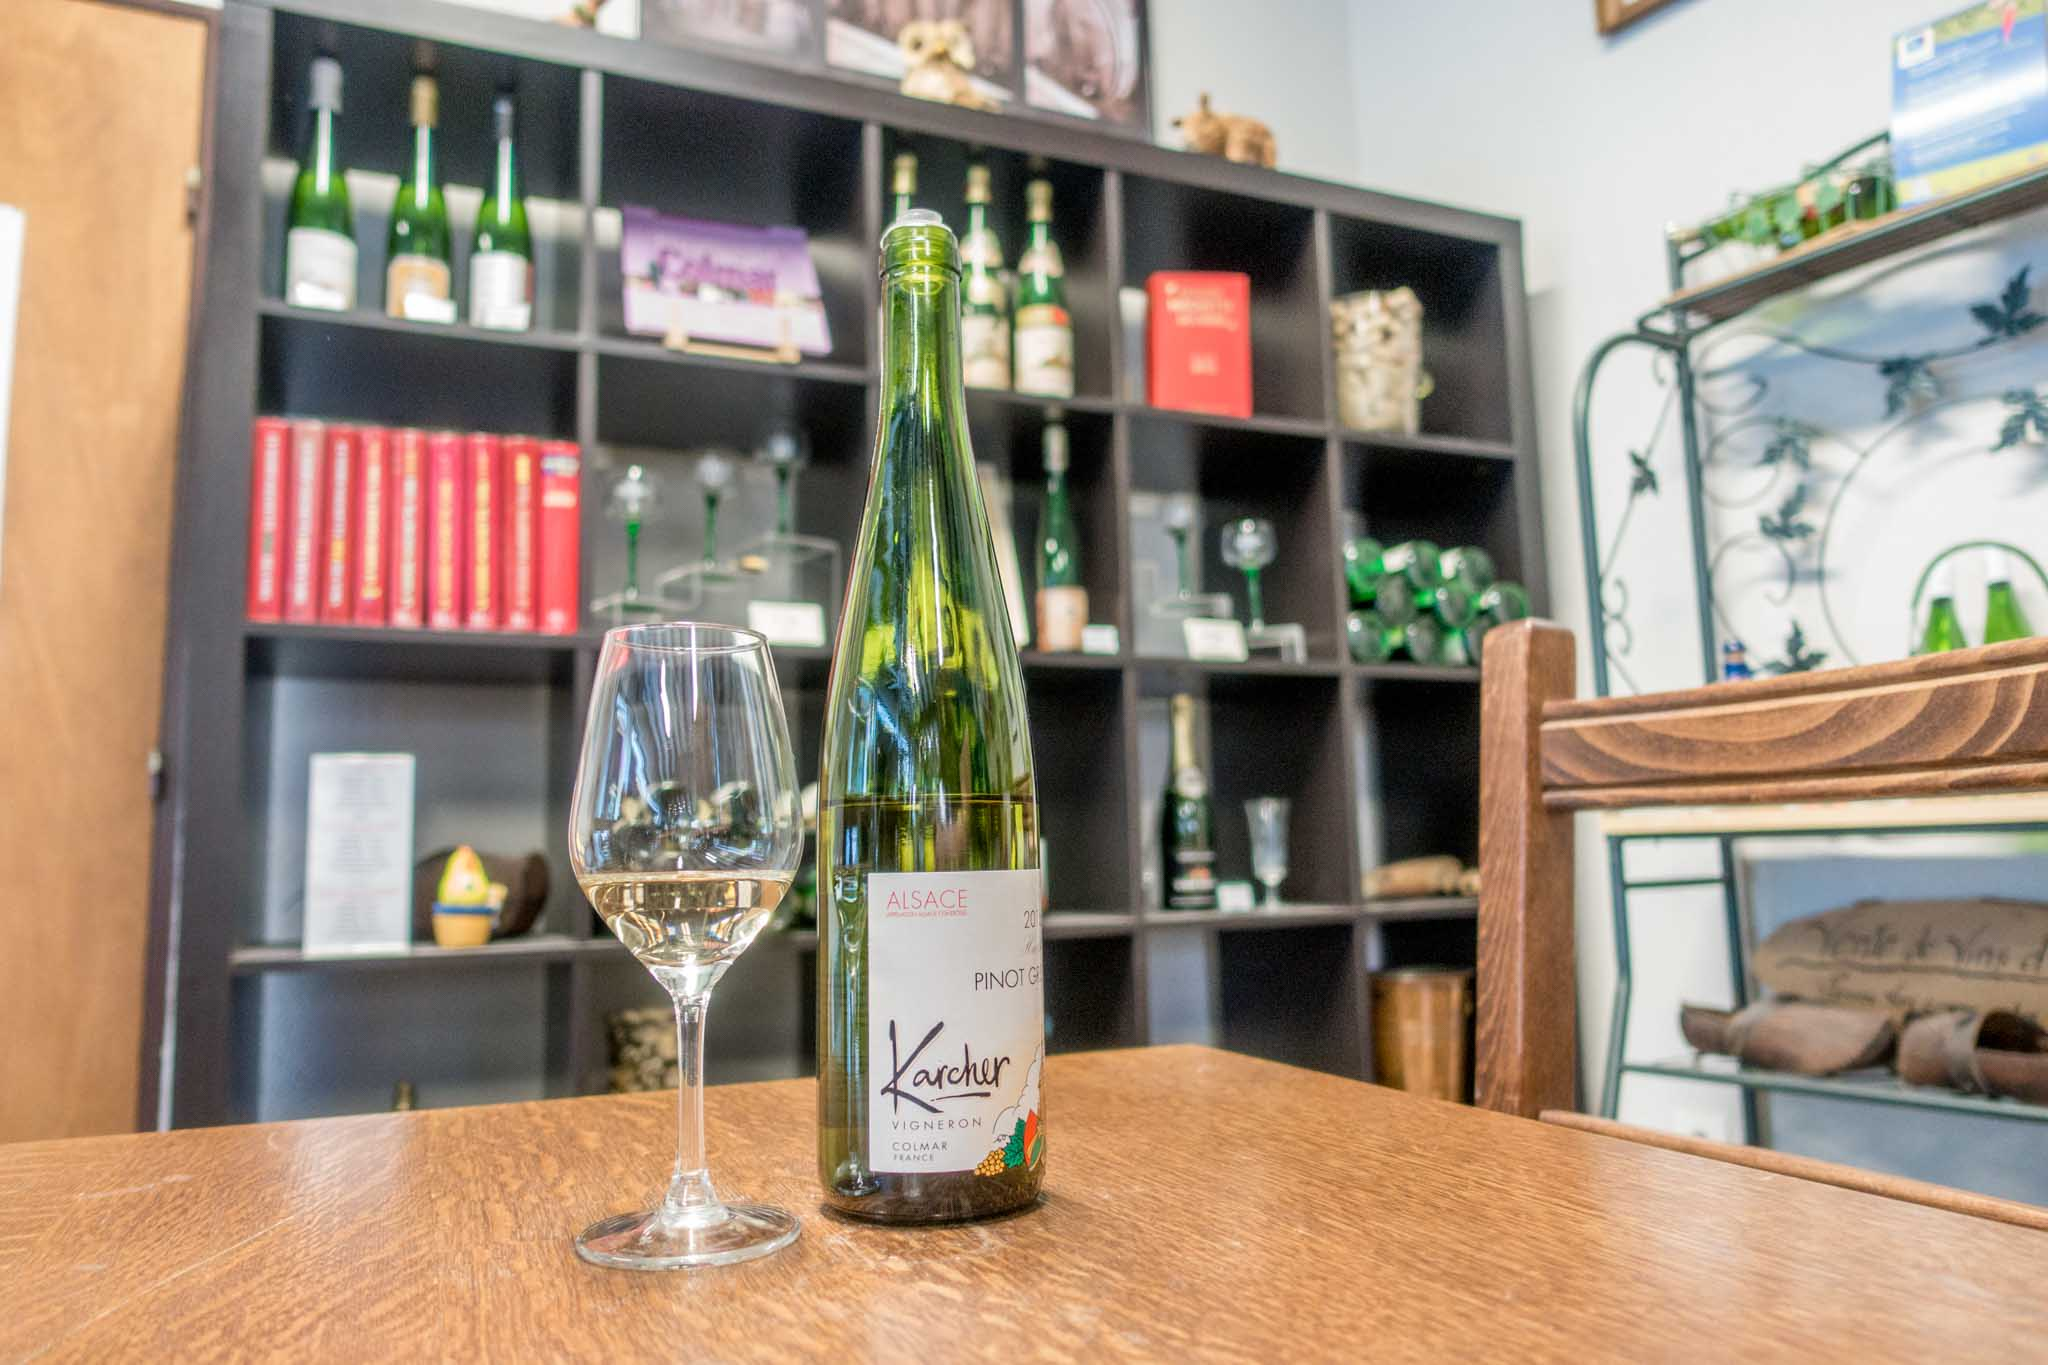 Wine bottle and glass at Domaine Karcher in Alsace France